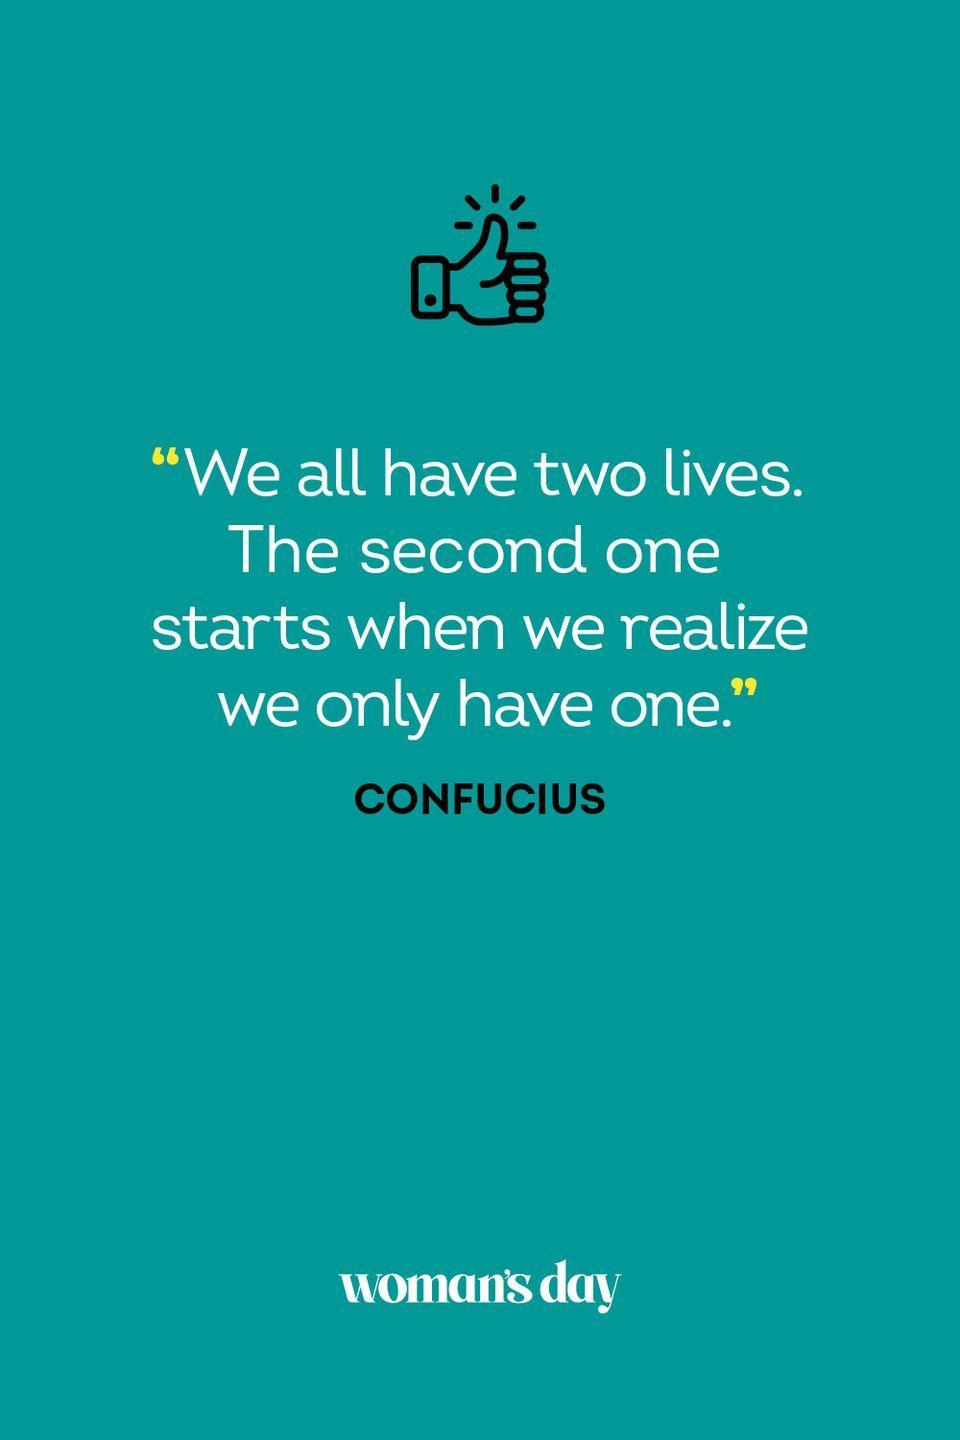 <p>We all have two lives. The second one starts when we realize we only have one.</p>